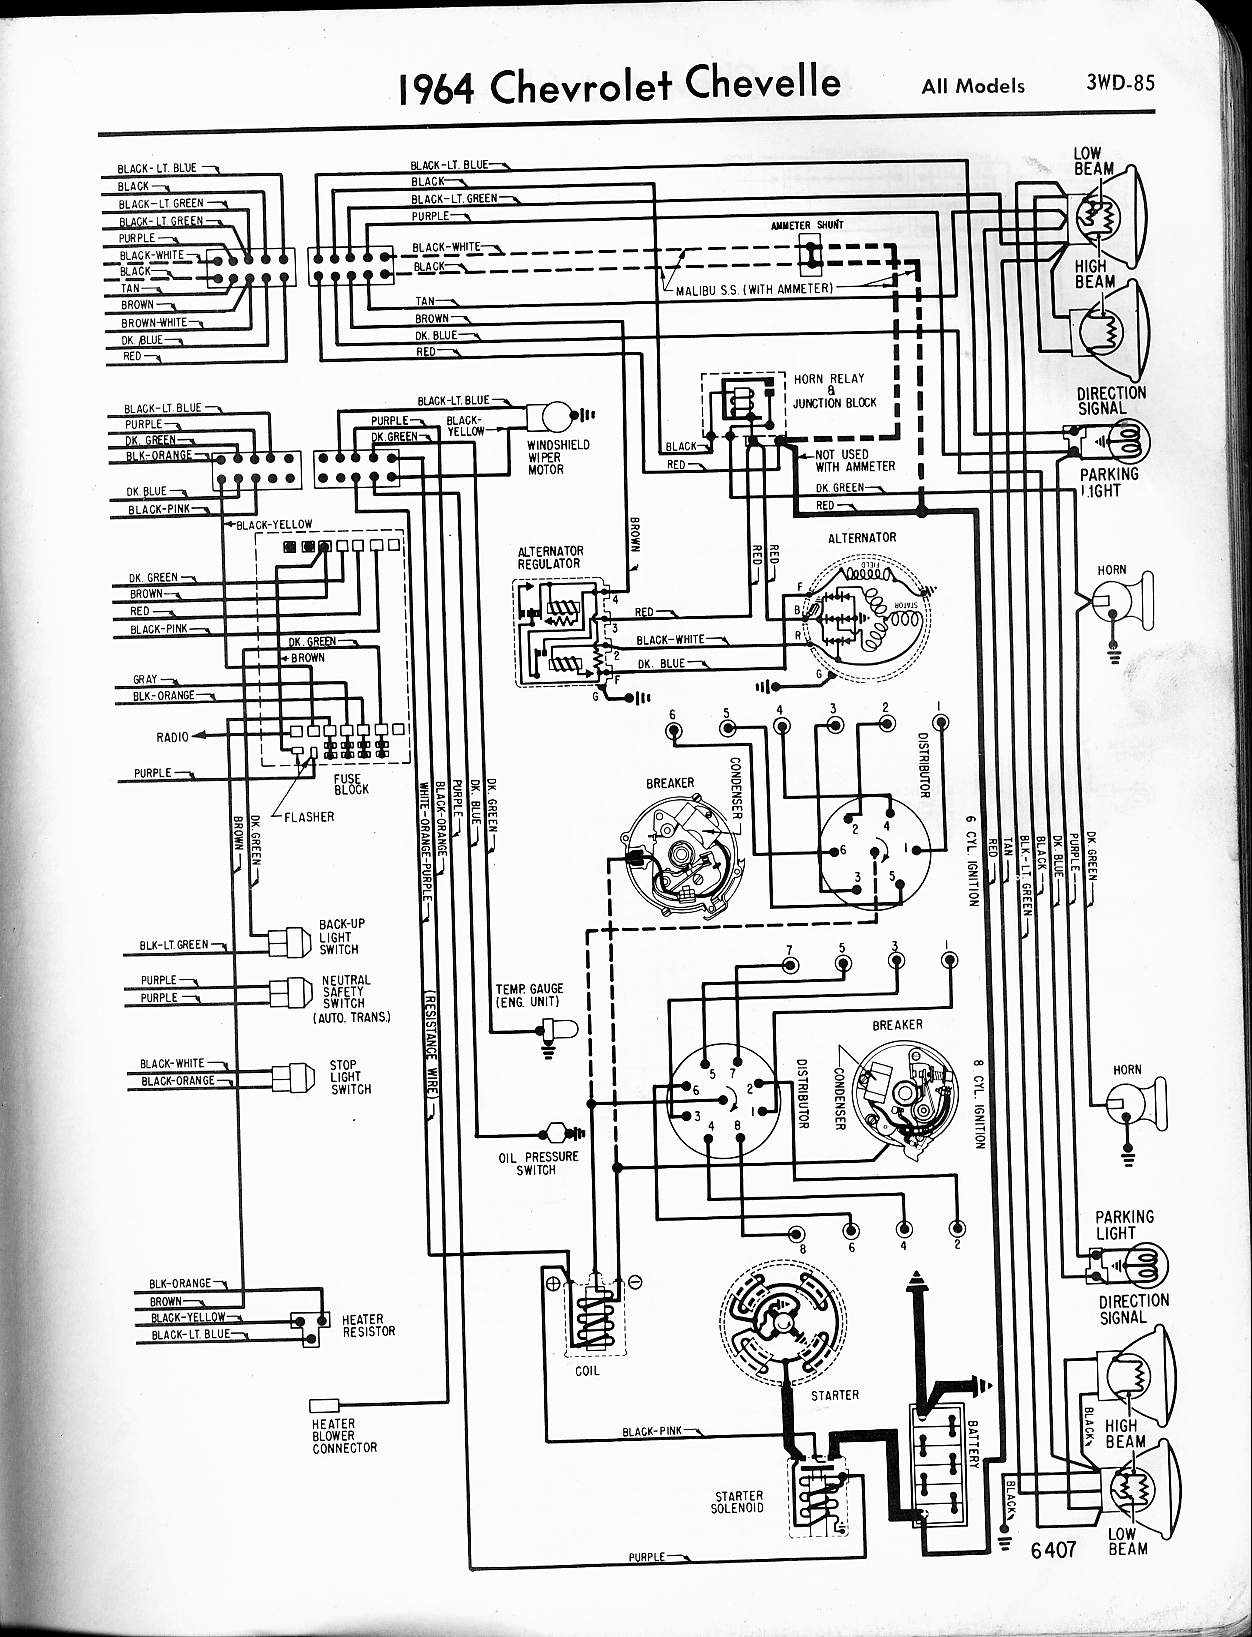 Gm 3 Wire Alternator Wiring Diagram 84 El Camino Schematic Library1964 Chevelle Figure A